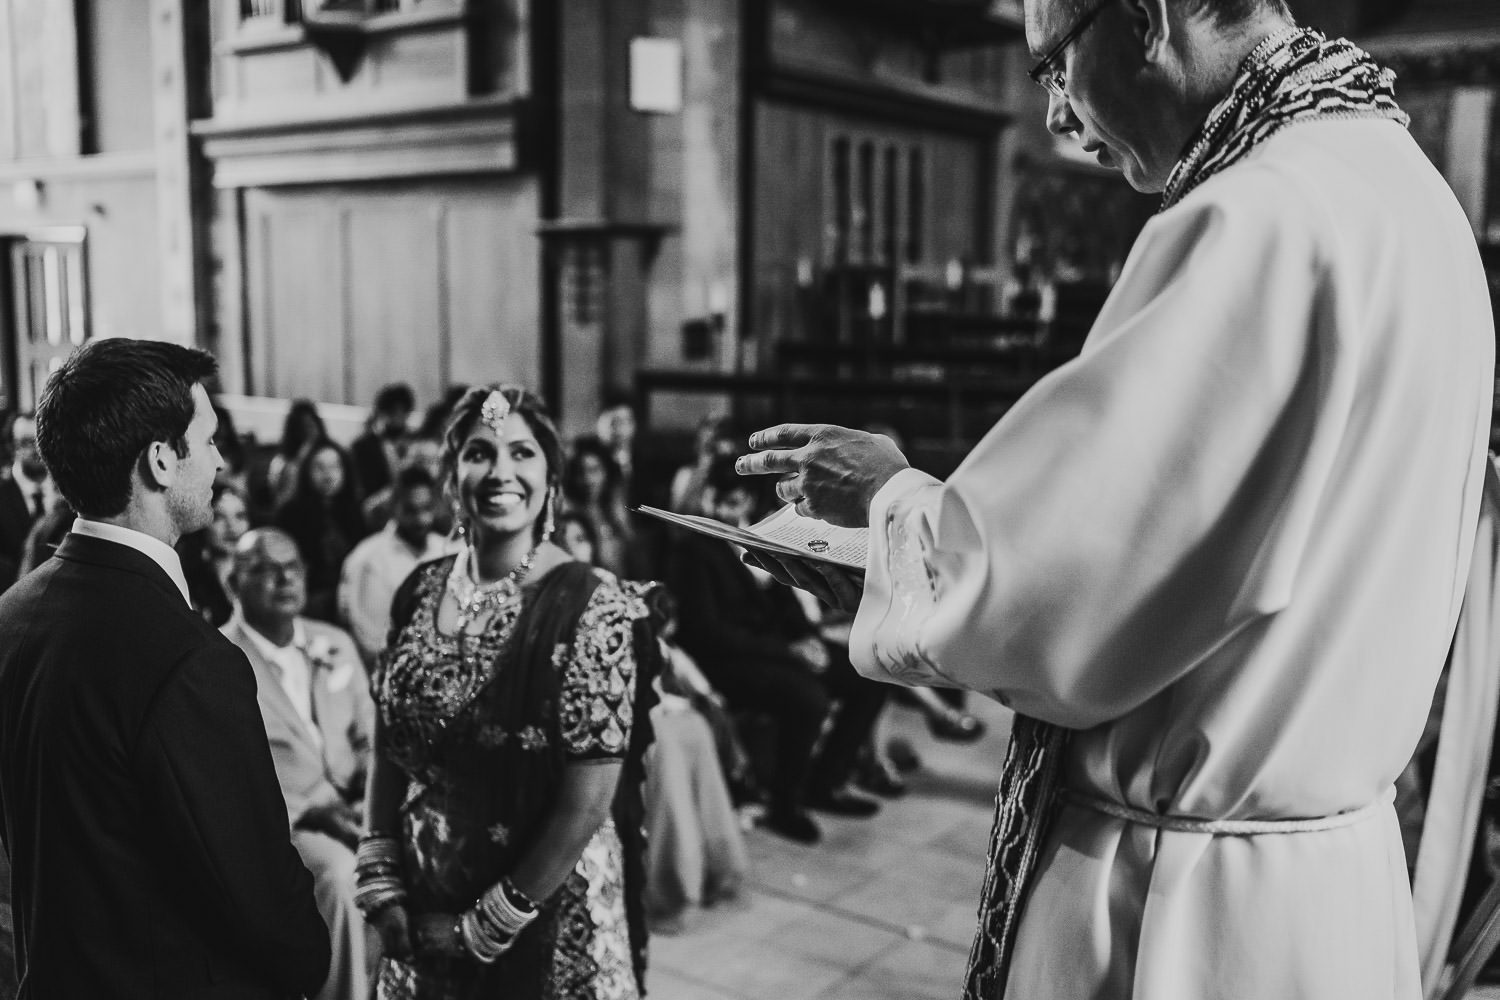 vicar blessing wedding rings during wedding ceremony in uppingham chapel